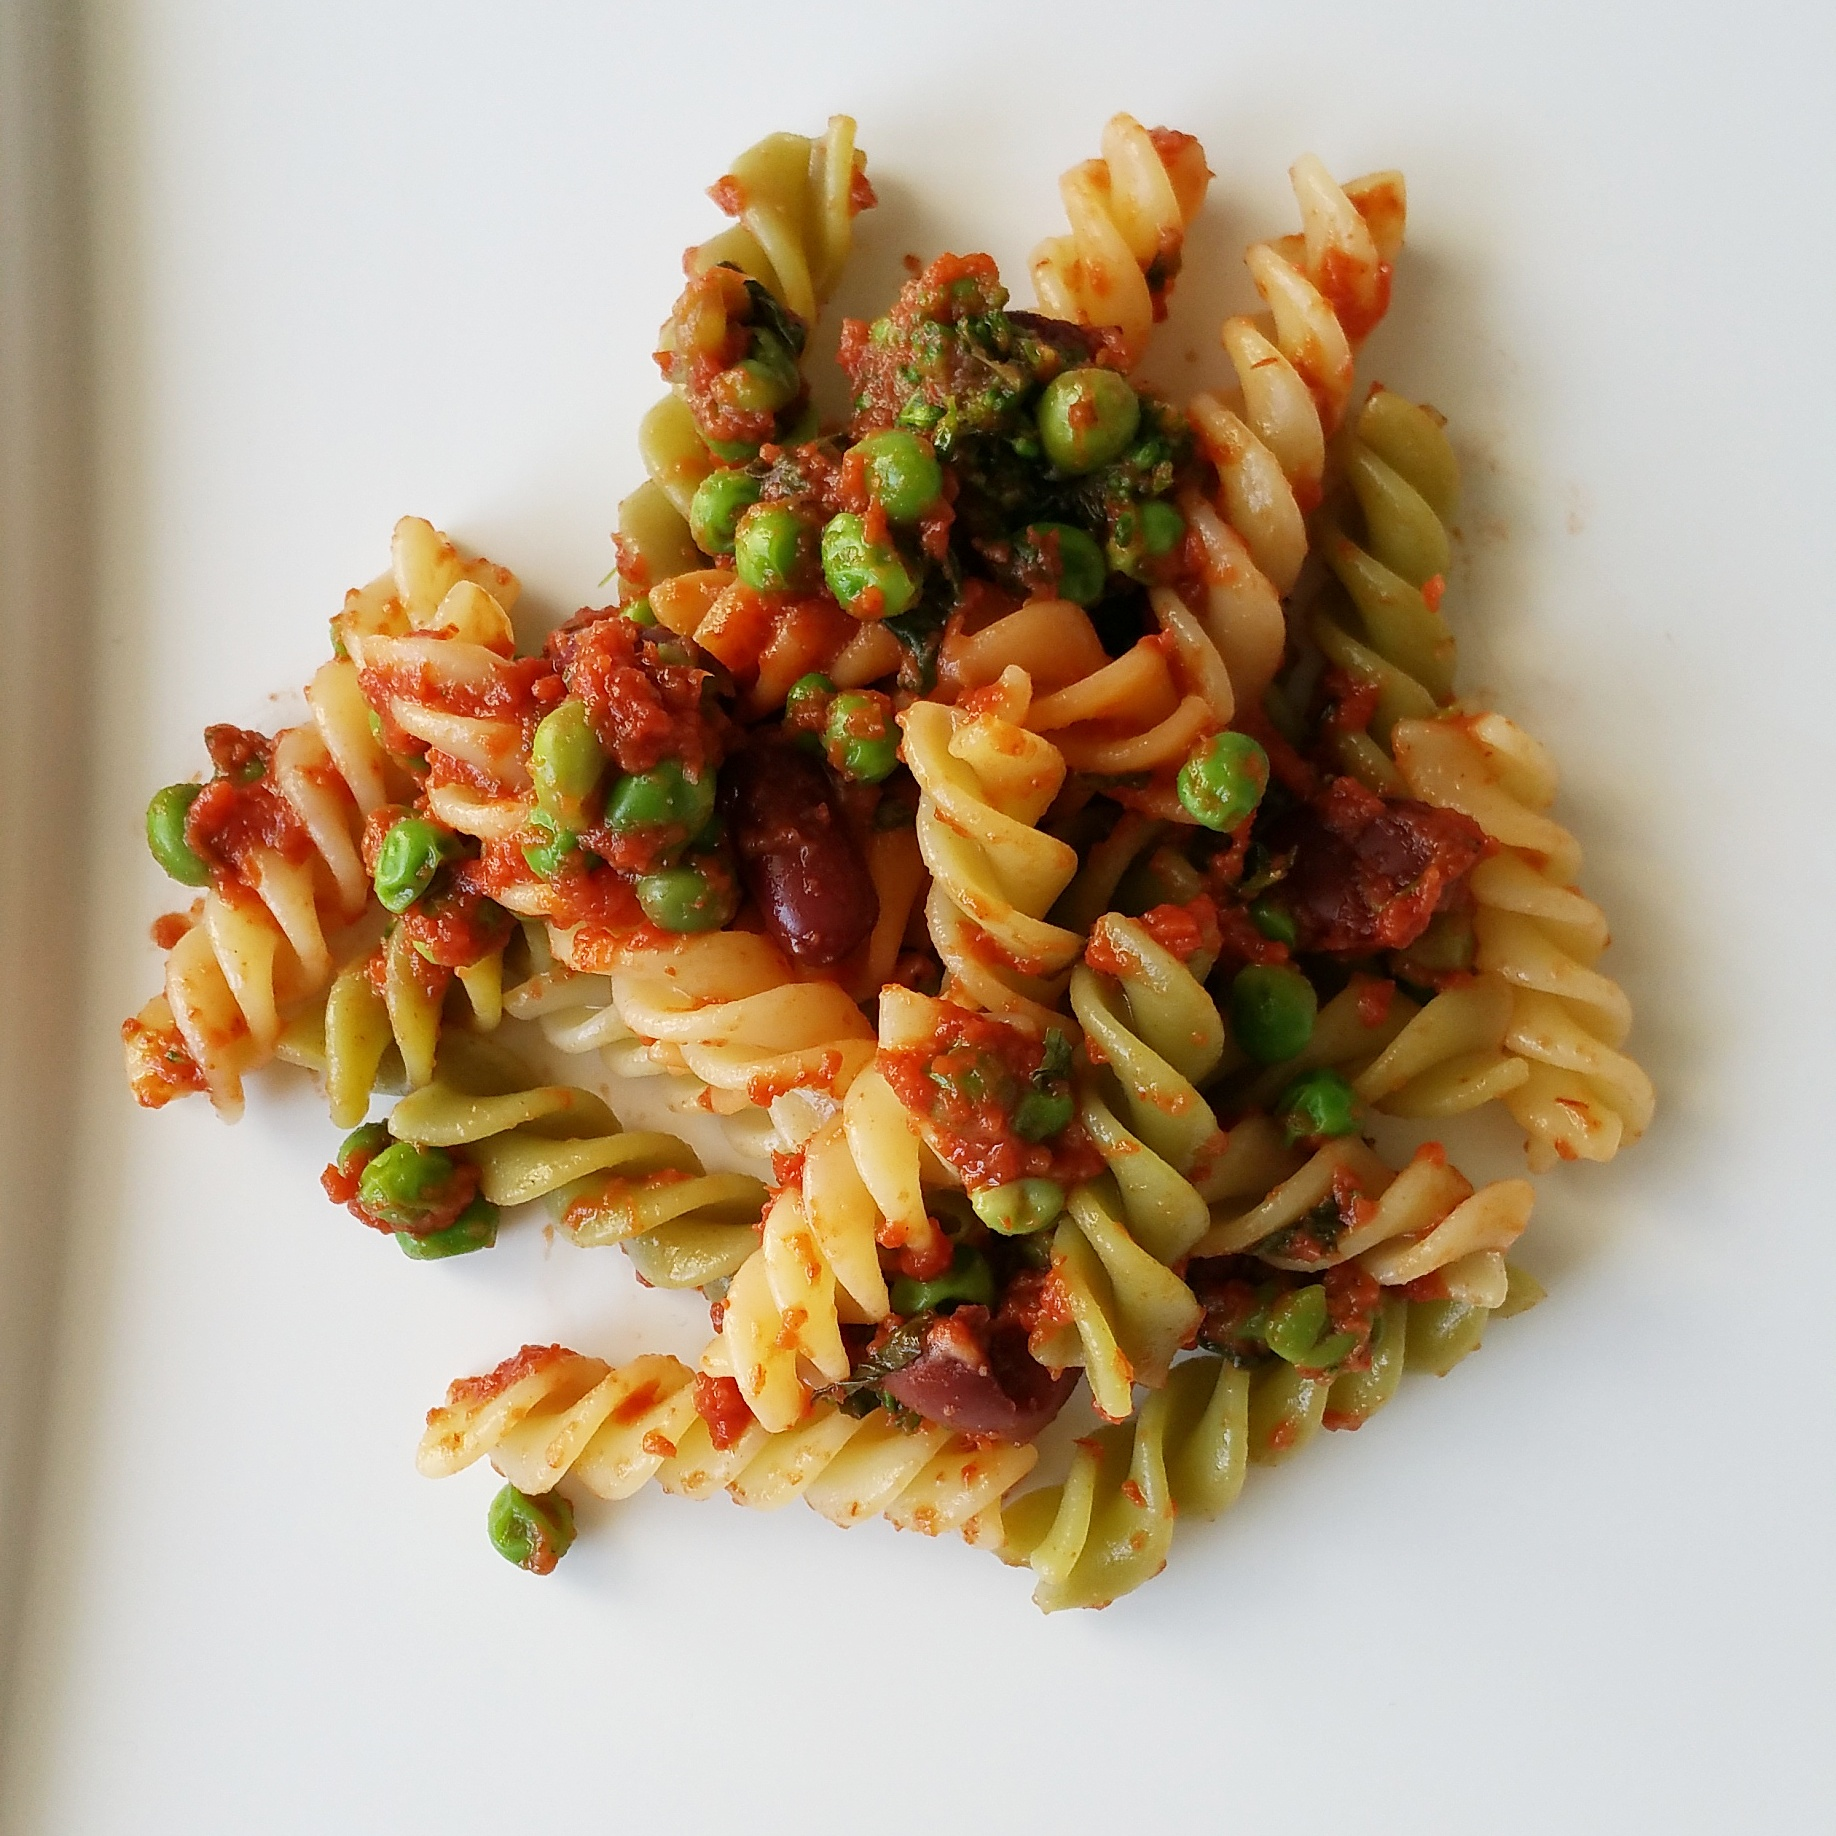 fusilli with beans, peas, and sauce